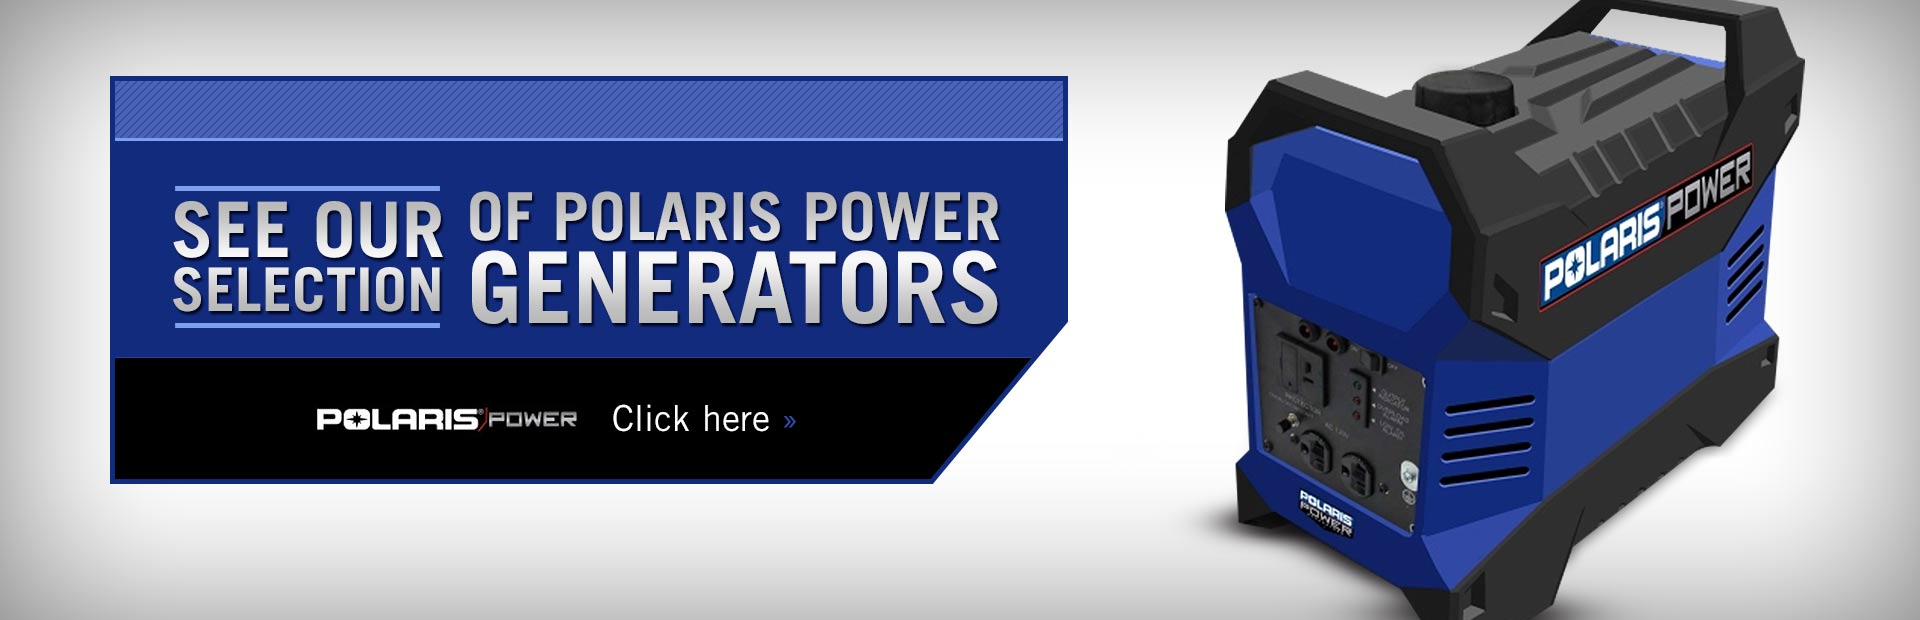 Polaris Power Generators: Click here to view the models.